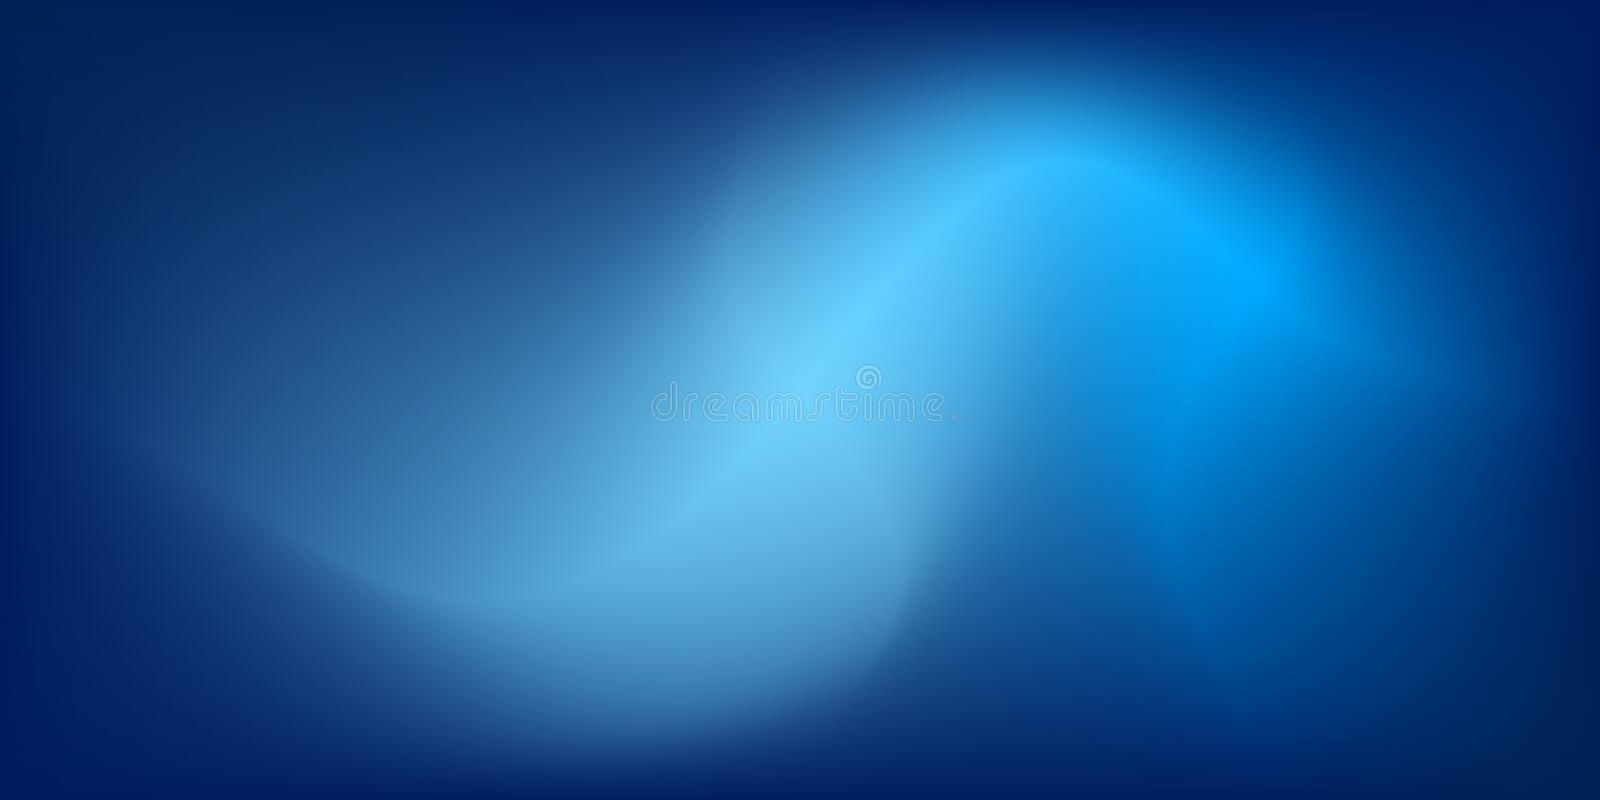 Abstract background blue and light color. For backdrop or design element and others royalty free illustration